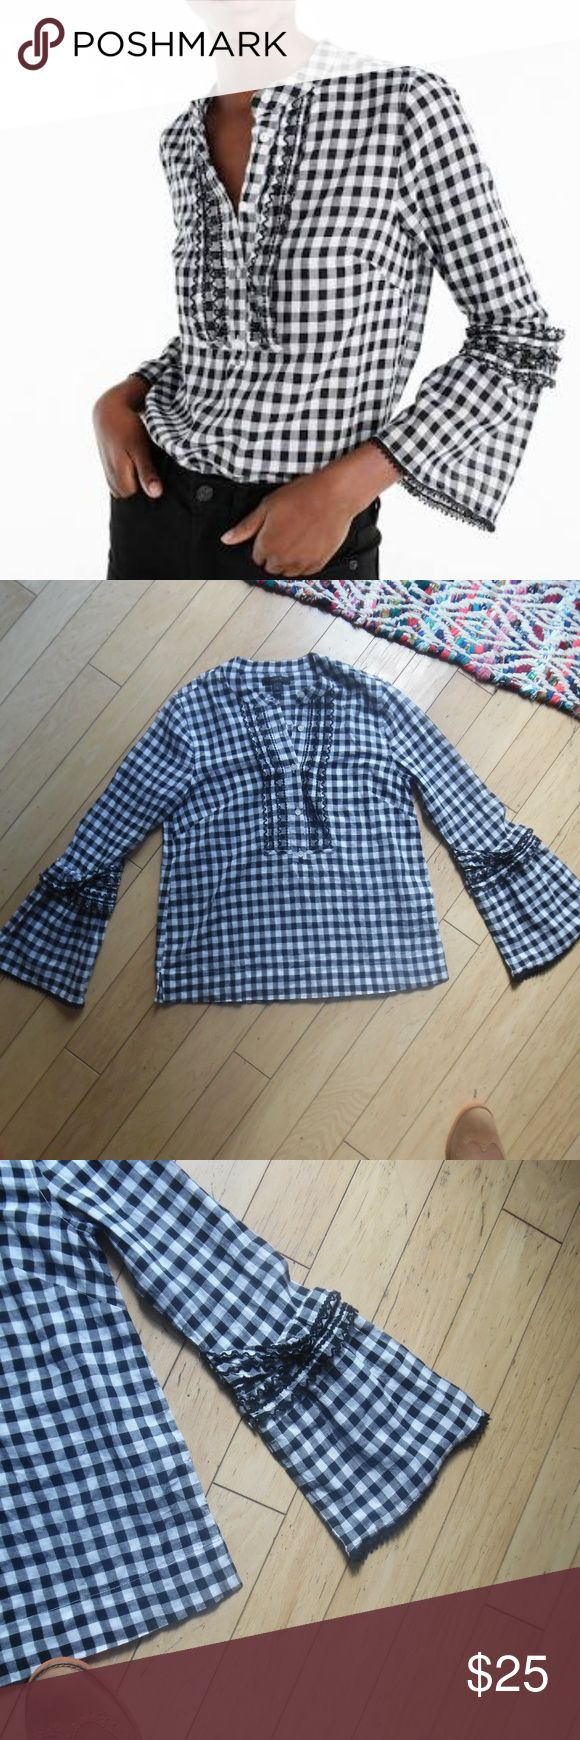 """J. Crew Embroidered bell-sleeve top in gingham This bell-sleeve top with contrast embroidery and a gingham print is the perfect match for your favorite denim. Body length: 24 1/2"""". - Long sleeves. - Button placket. - Machine wash.  Size : 0   Same Day Delivery!! J. Crew Tops Blouses"""